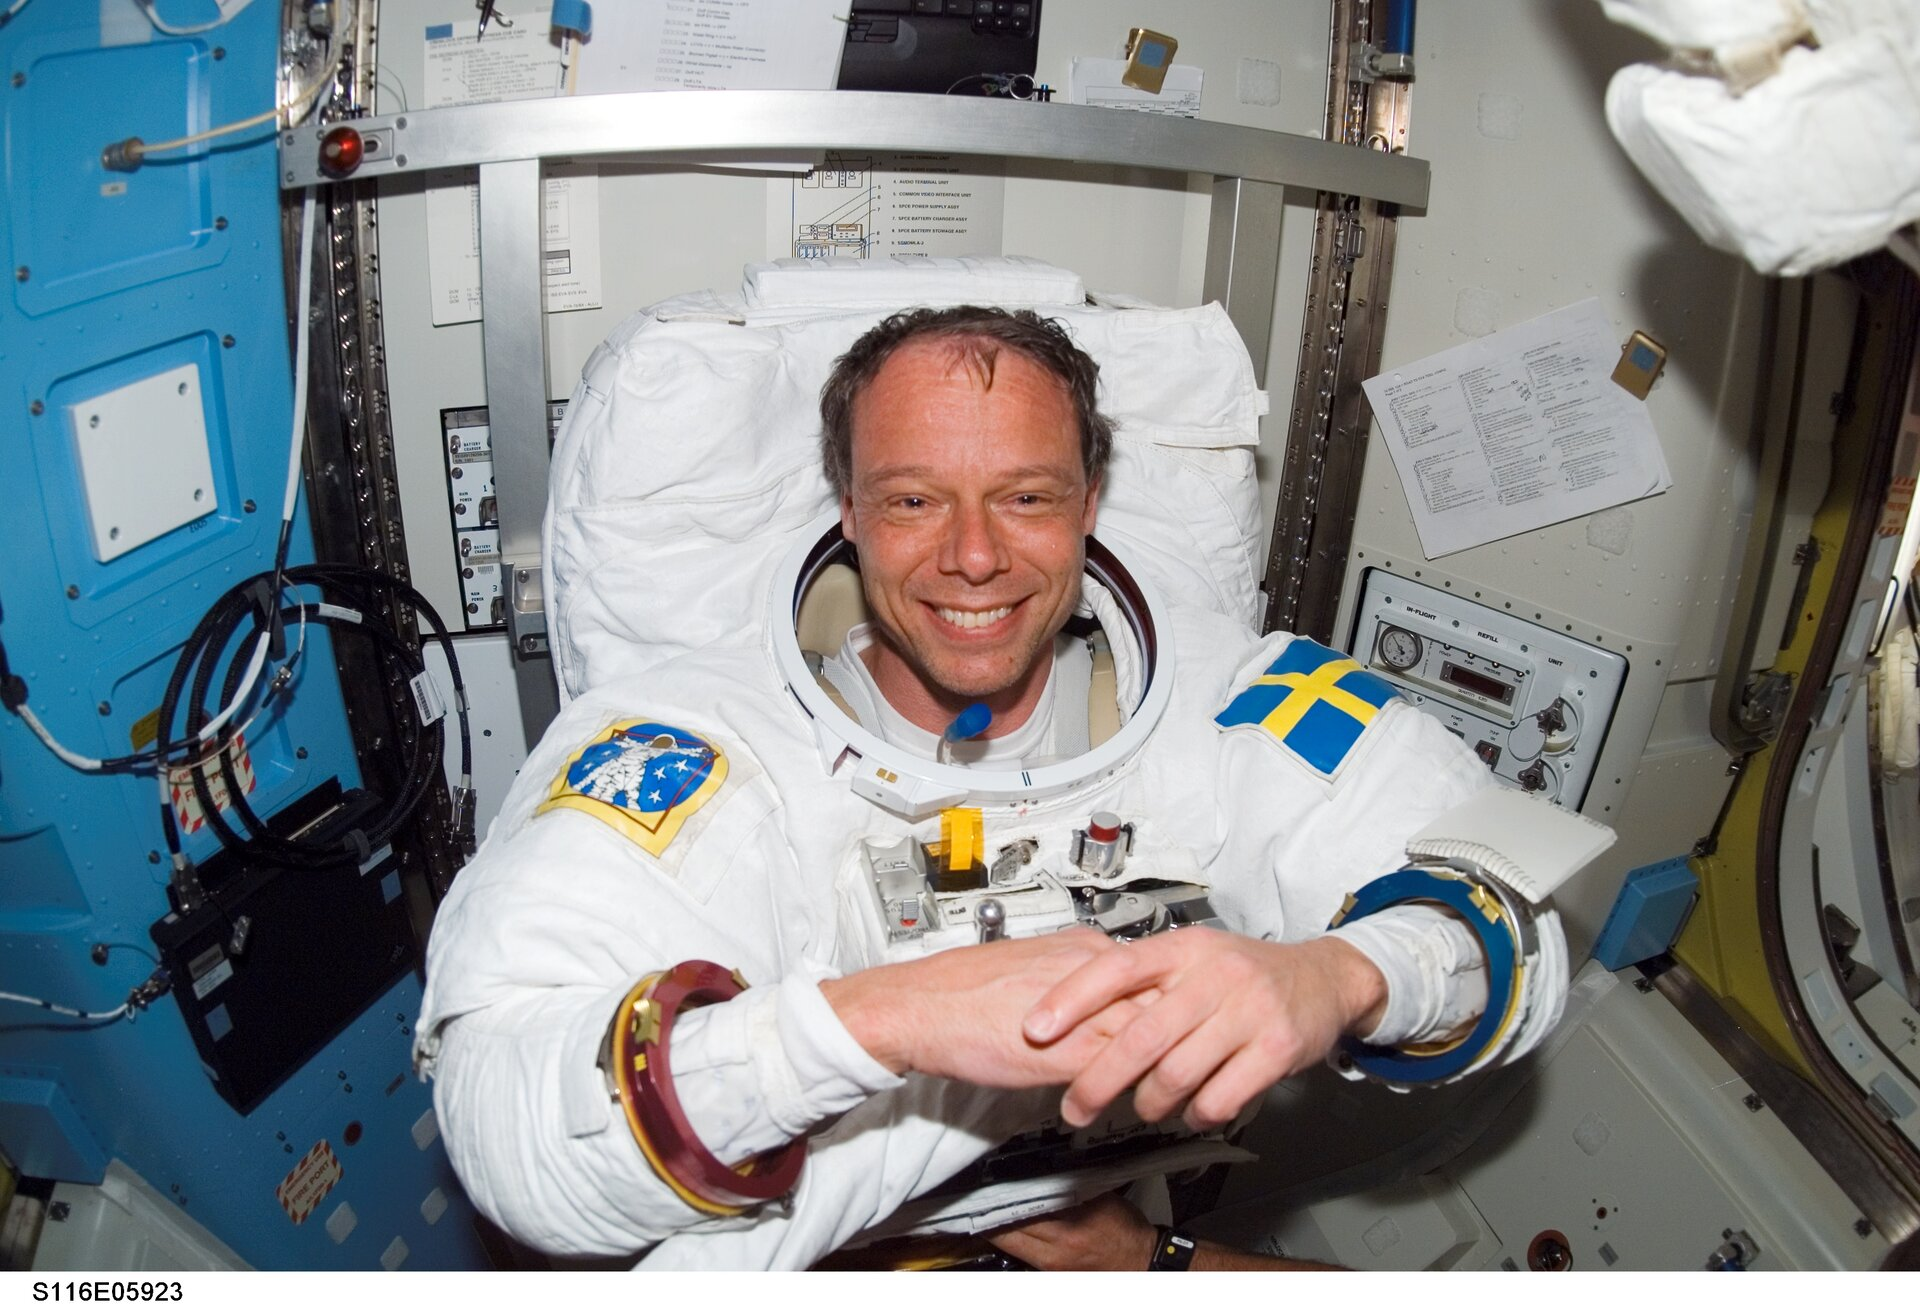 Christer Fuglesang prepares for his first spacewalk